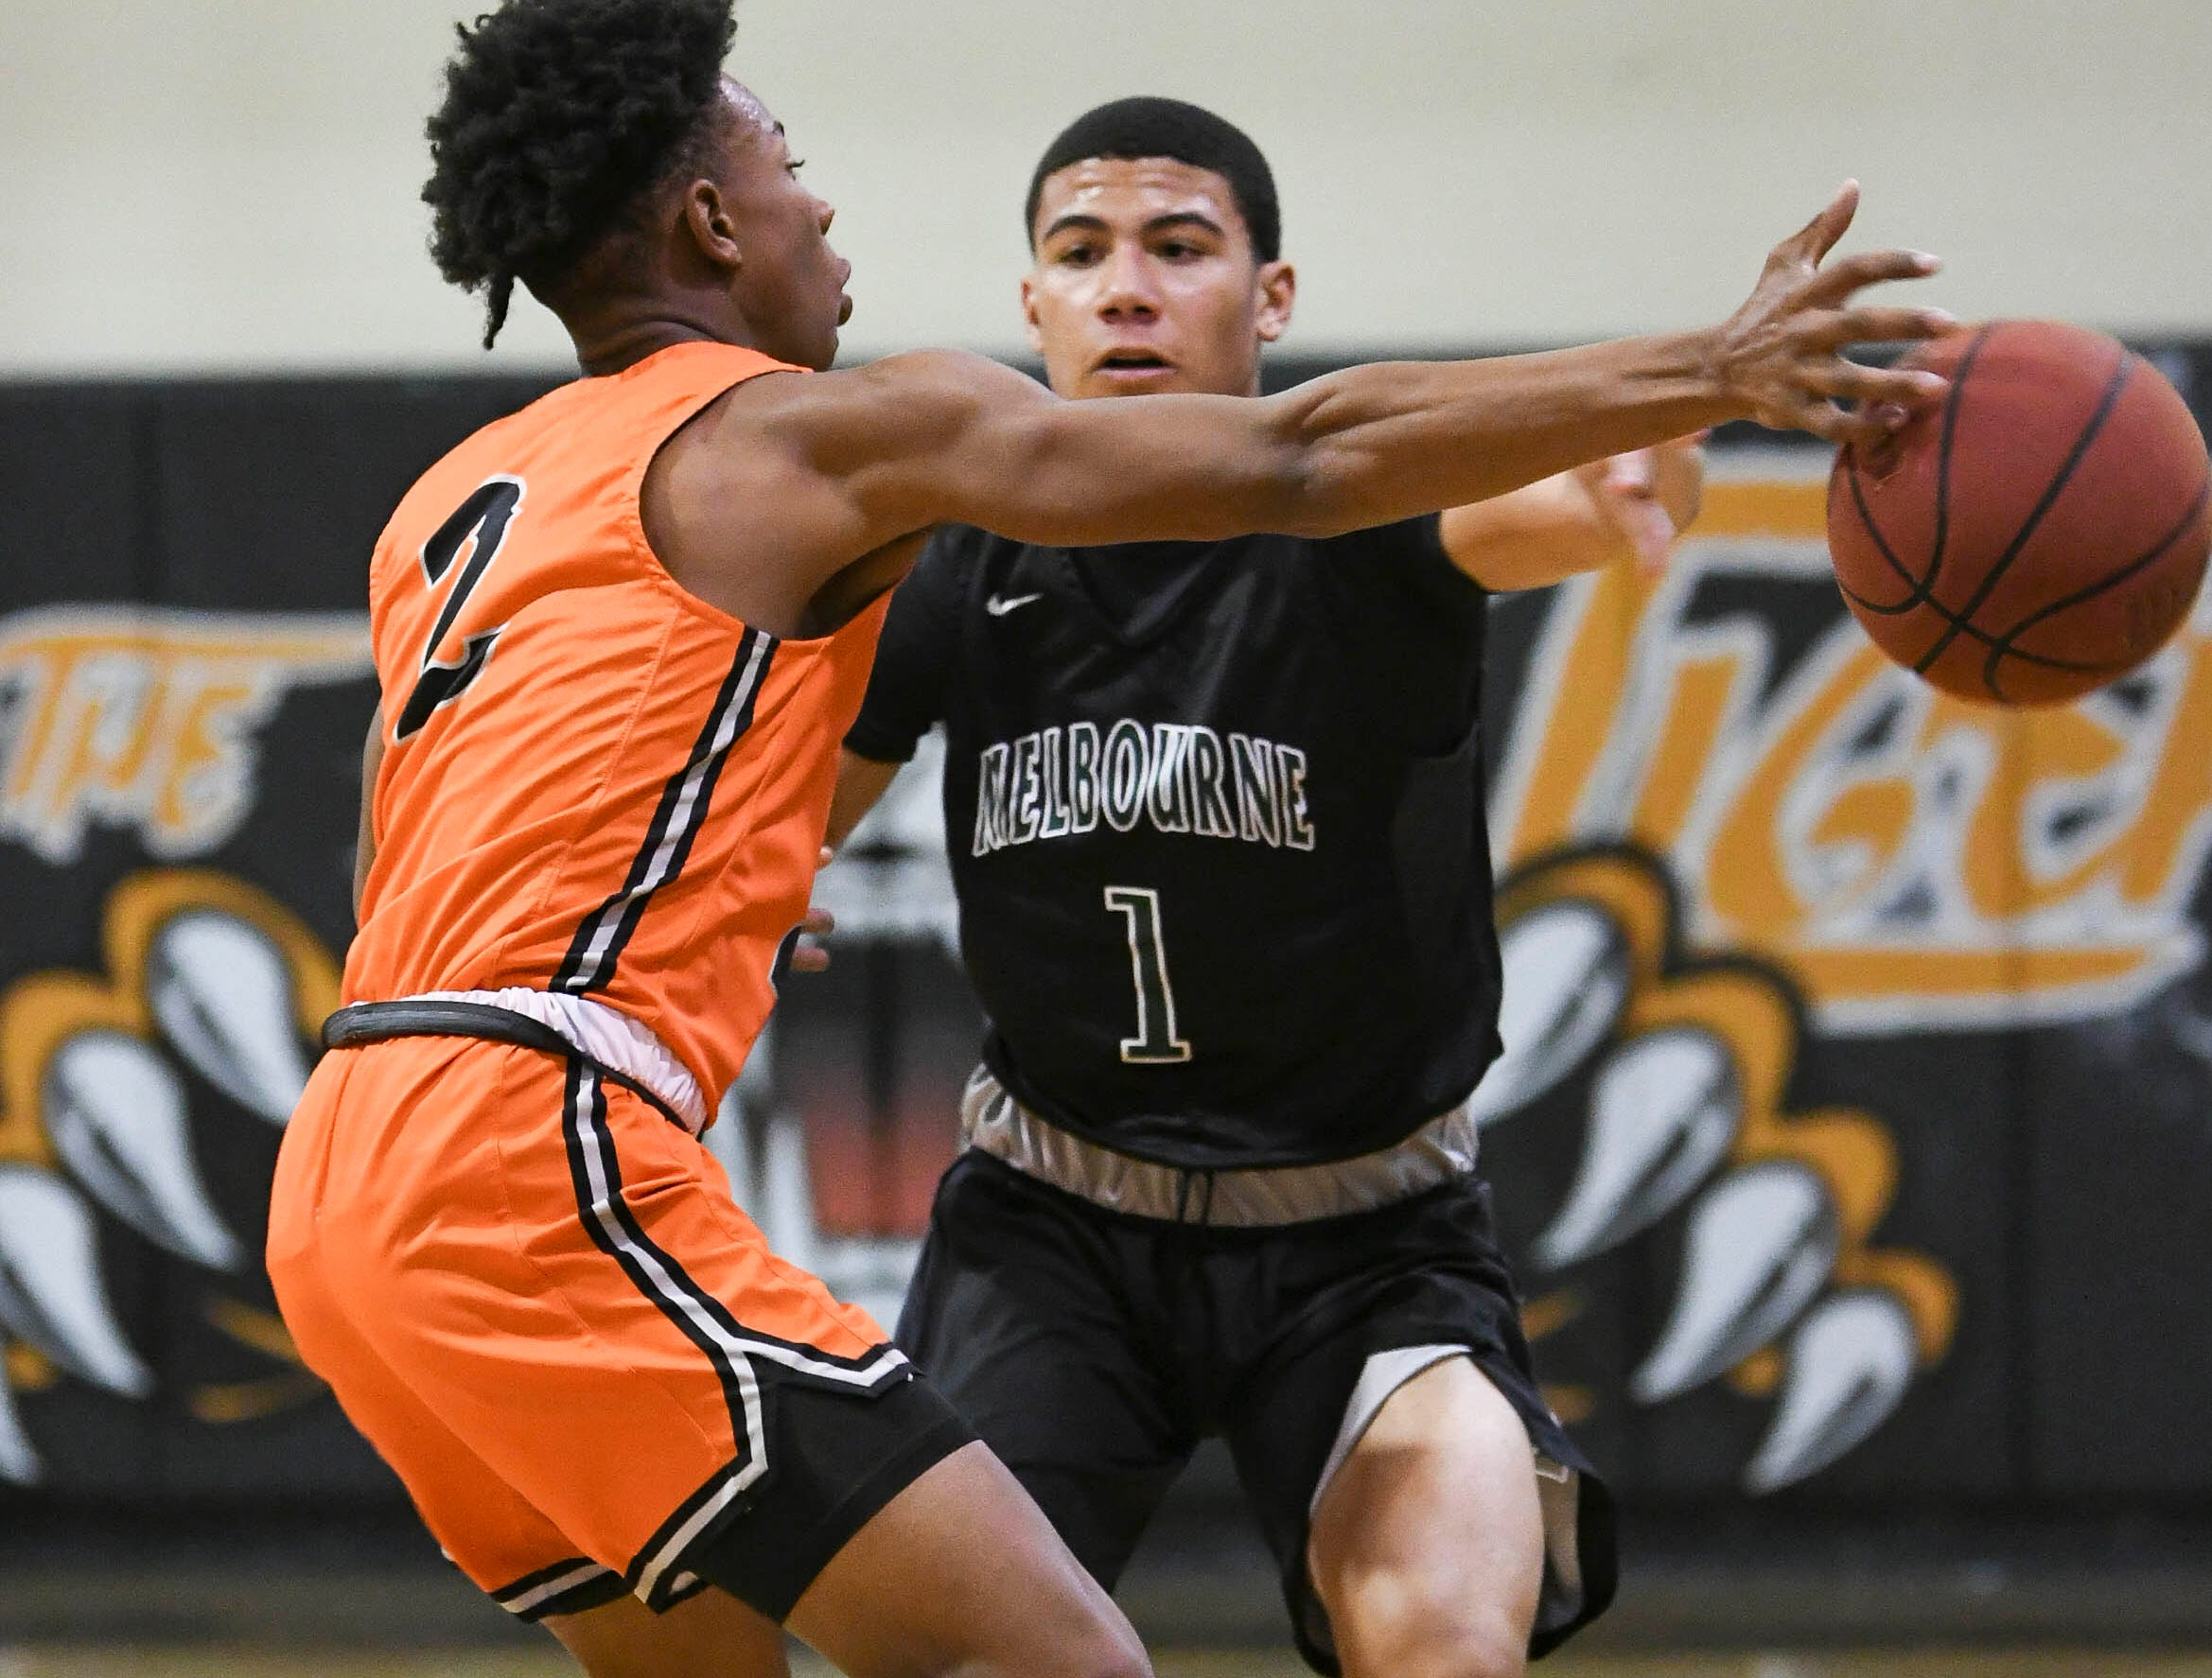 Melbourne's Tony Wright (1) passes around the guard of Cocoa's Jay Robinson Thursday at Cocoa High School.